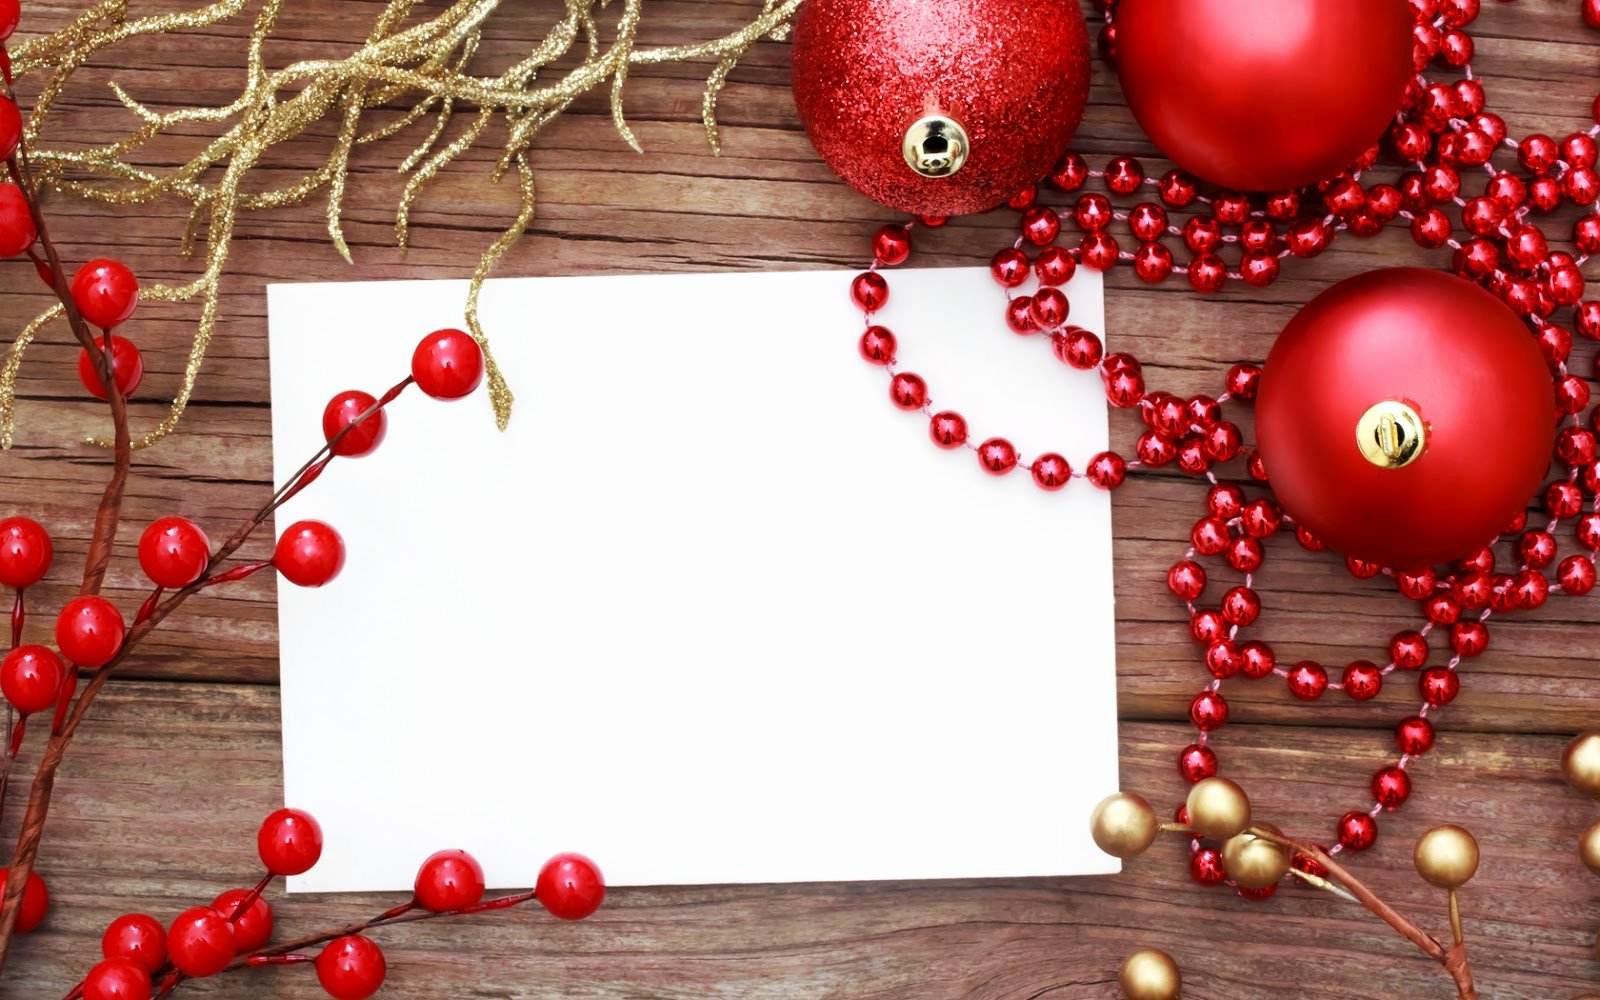 Free Background Templates for Word New Christmas Vector Template Card Text Printable for